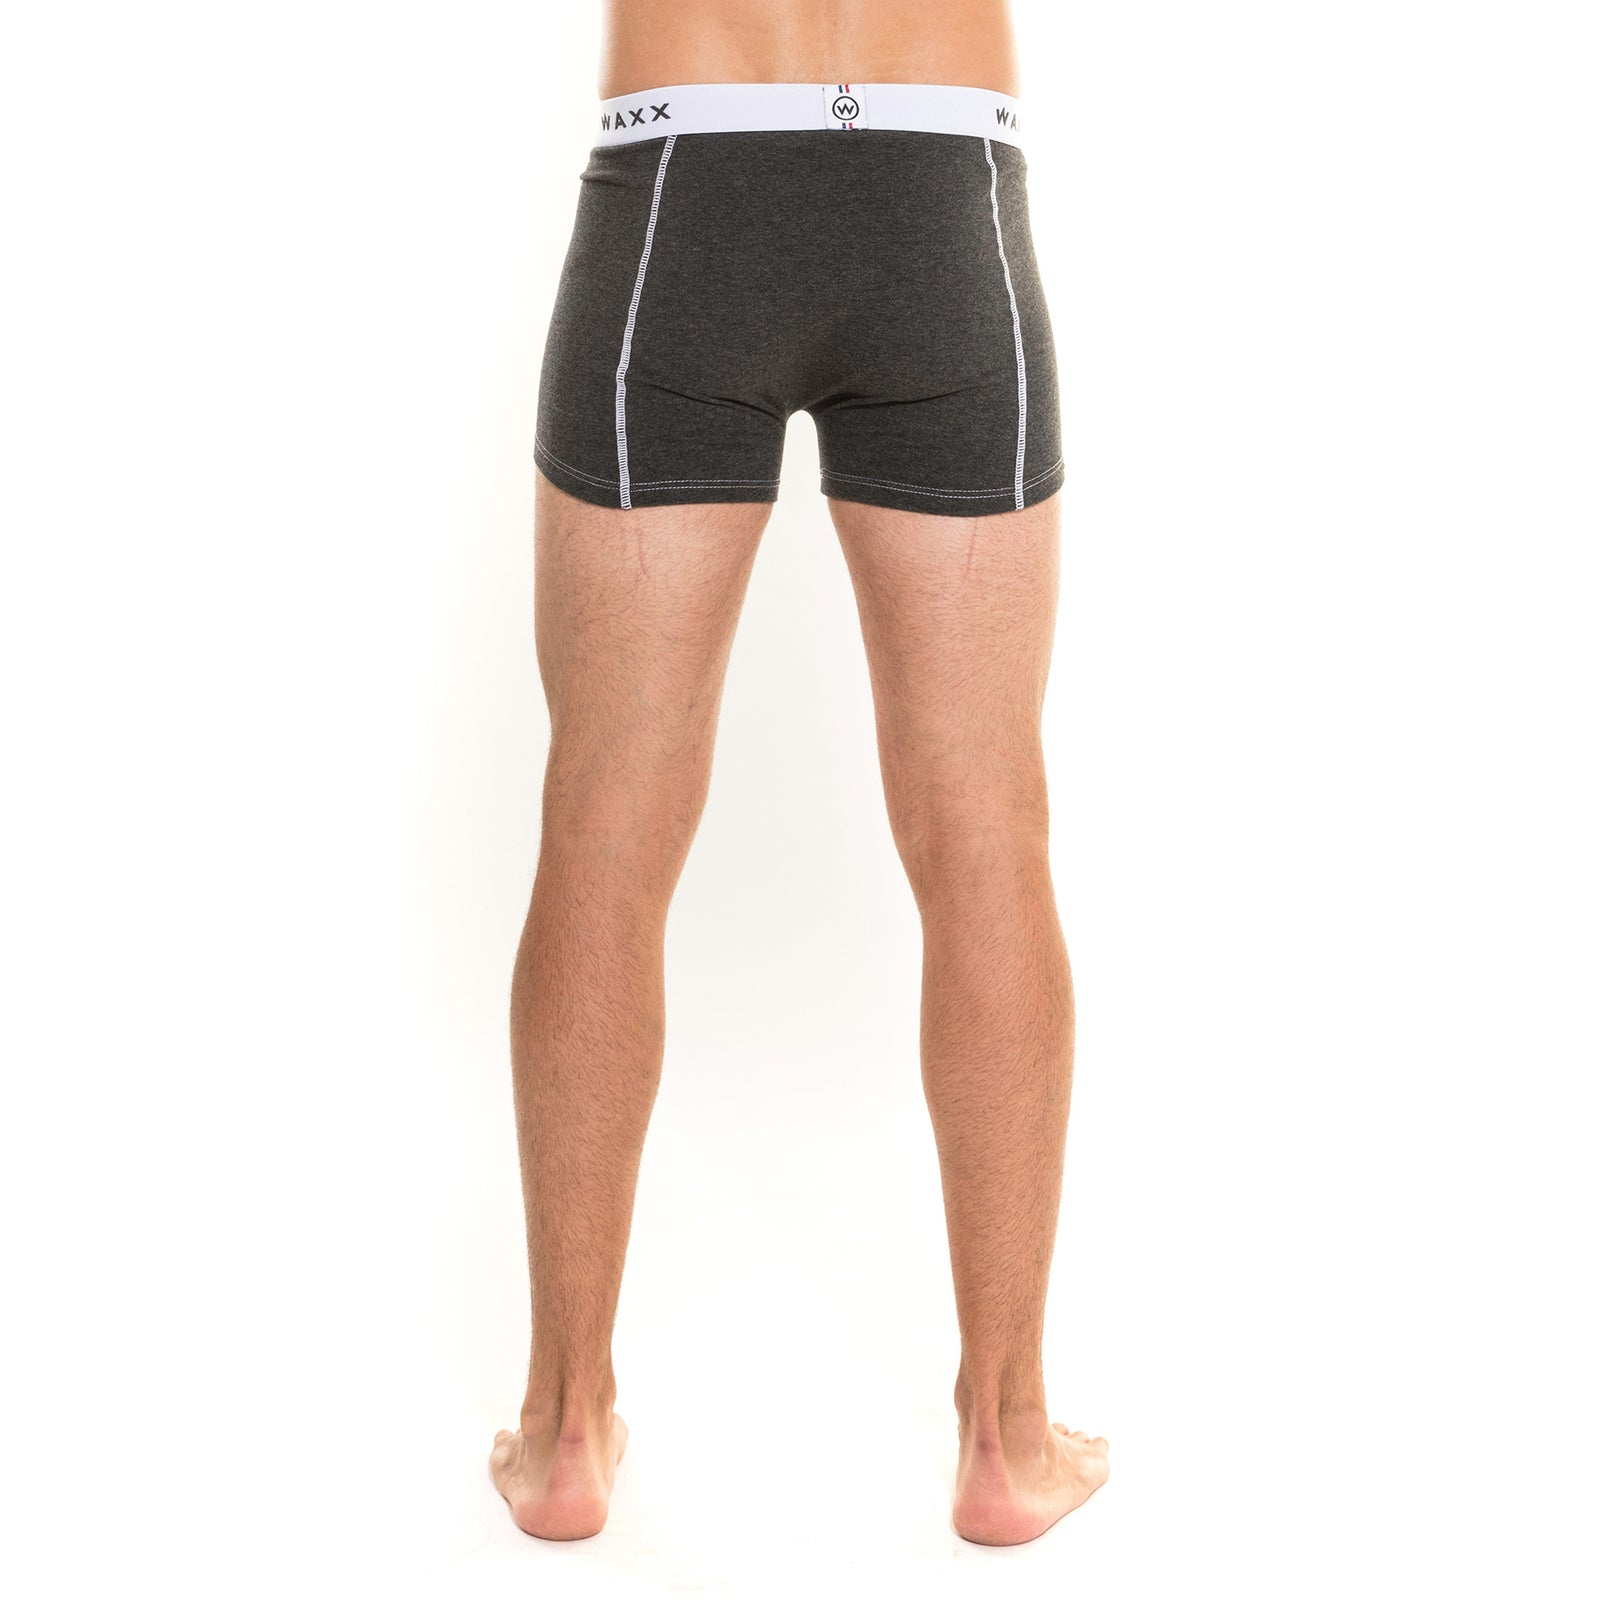 Waxx Men's Cotton Trunk Boxer Anthracite Chine